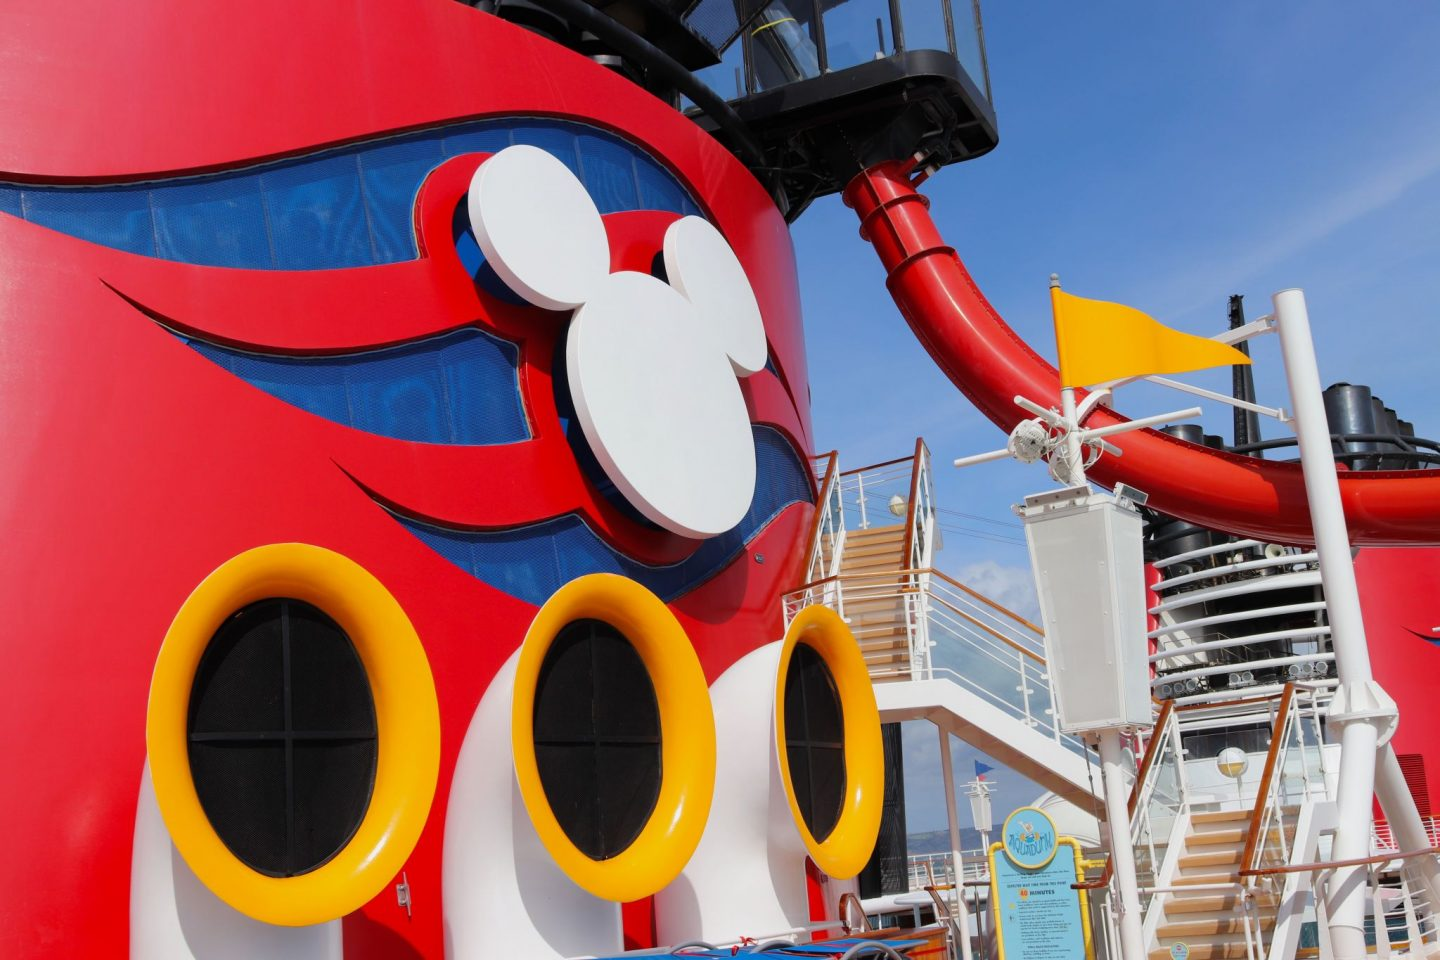 Cruising with Mickey Mouse!  Our 12 Day Transatlantic Crossing with Disney Cruise Line